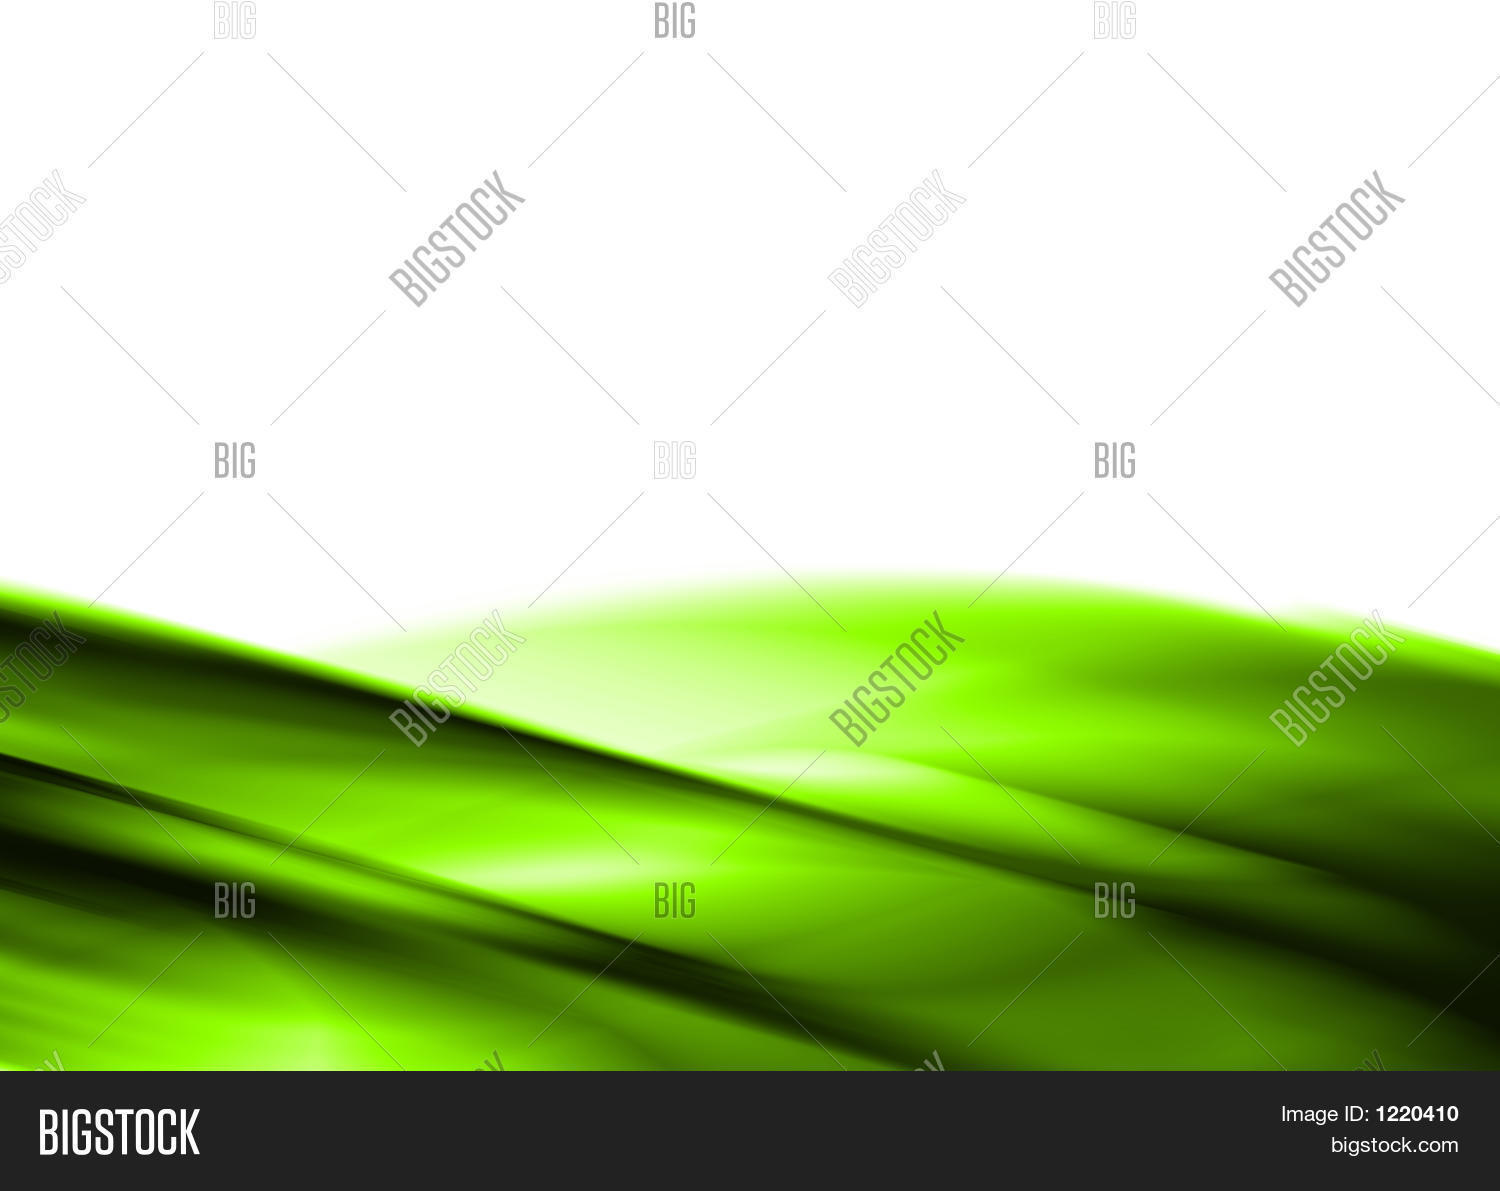 abstract,abstract art,abstraction,art,artistic,backdrop,background,background design,background green,blend,borders,colors,compositions,computer,cyber,design,desktop,digital,dynamic,effects,electric,elements,flow,forms,futuristic,graphic,green,green abstract,green abstract background,green background,green backgrounds,illustration,layers,light,lines,motion,patterns,presentation,print,publicity,shapes,shiny,space,techno,technology,templates,texture,themes,wallpaper,water,waves,web